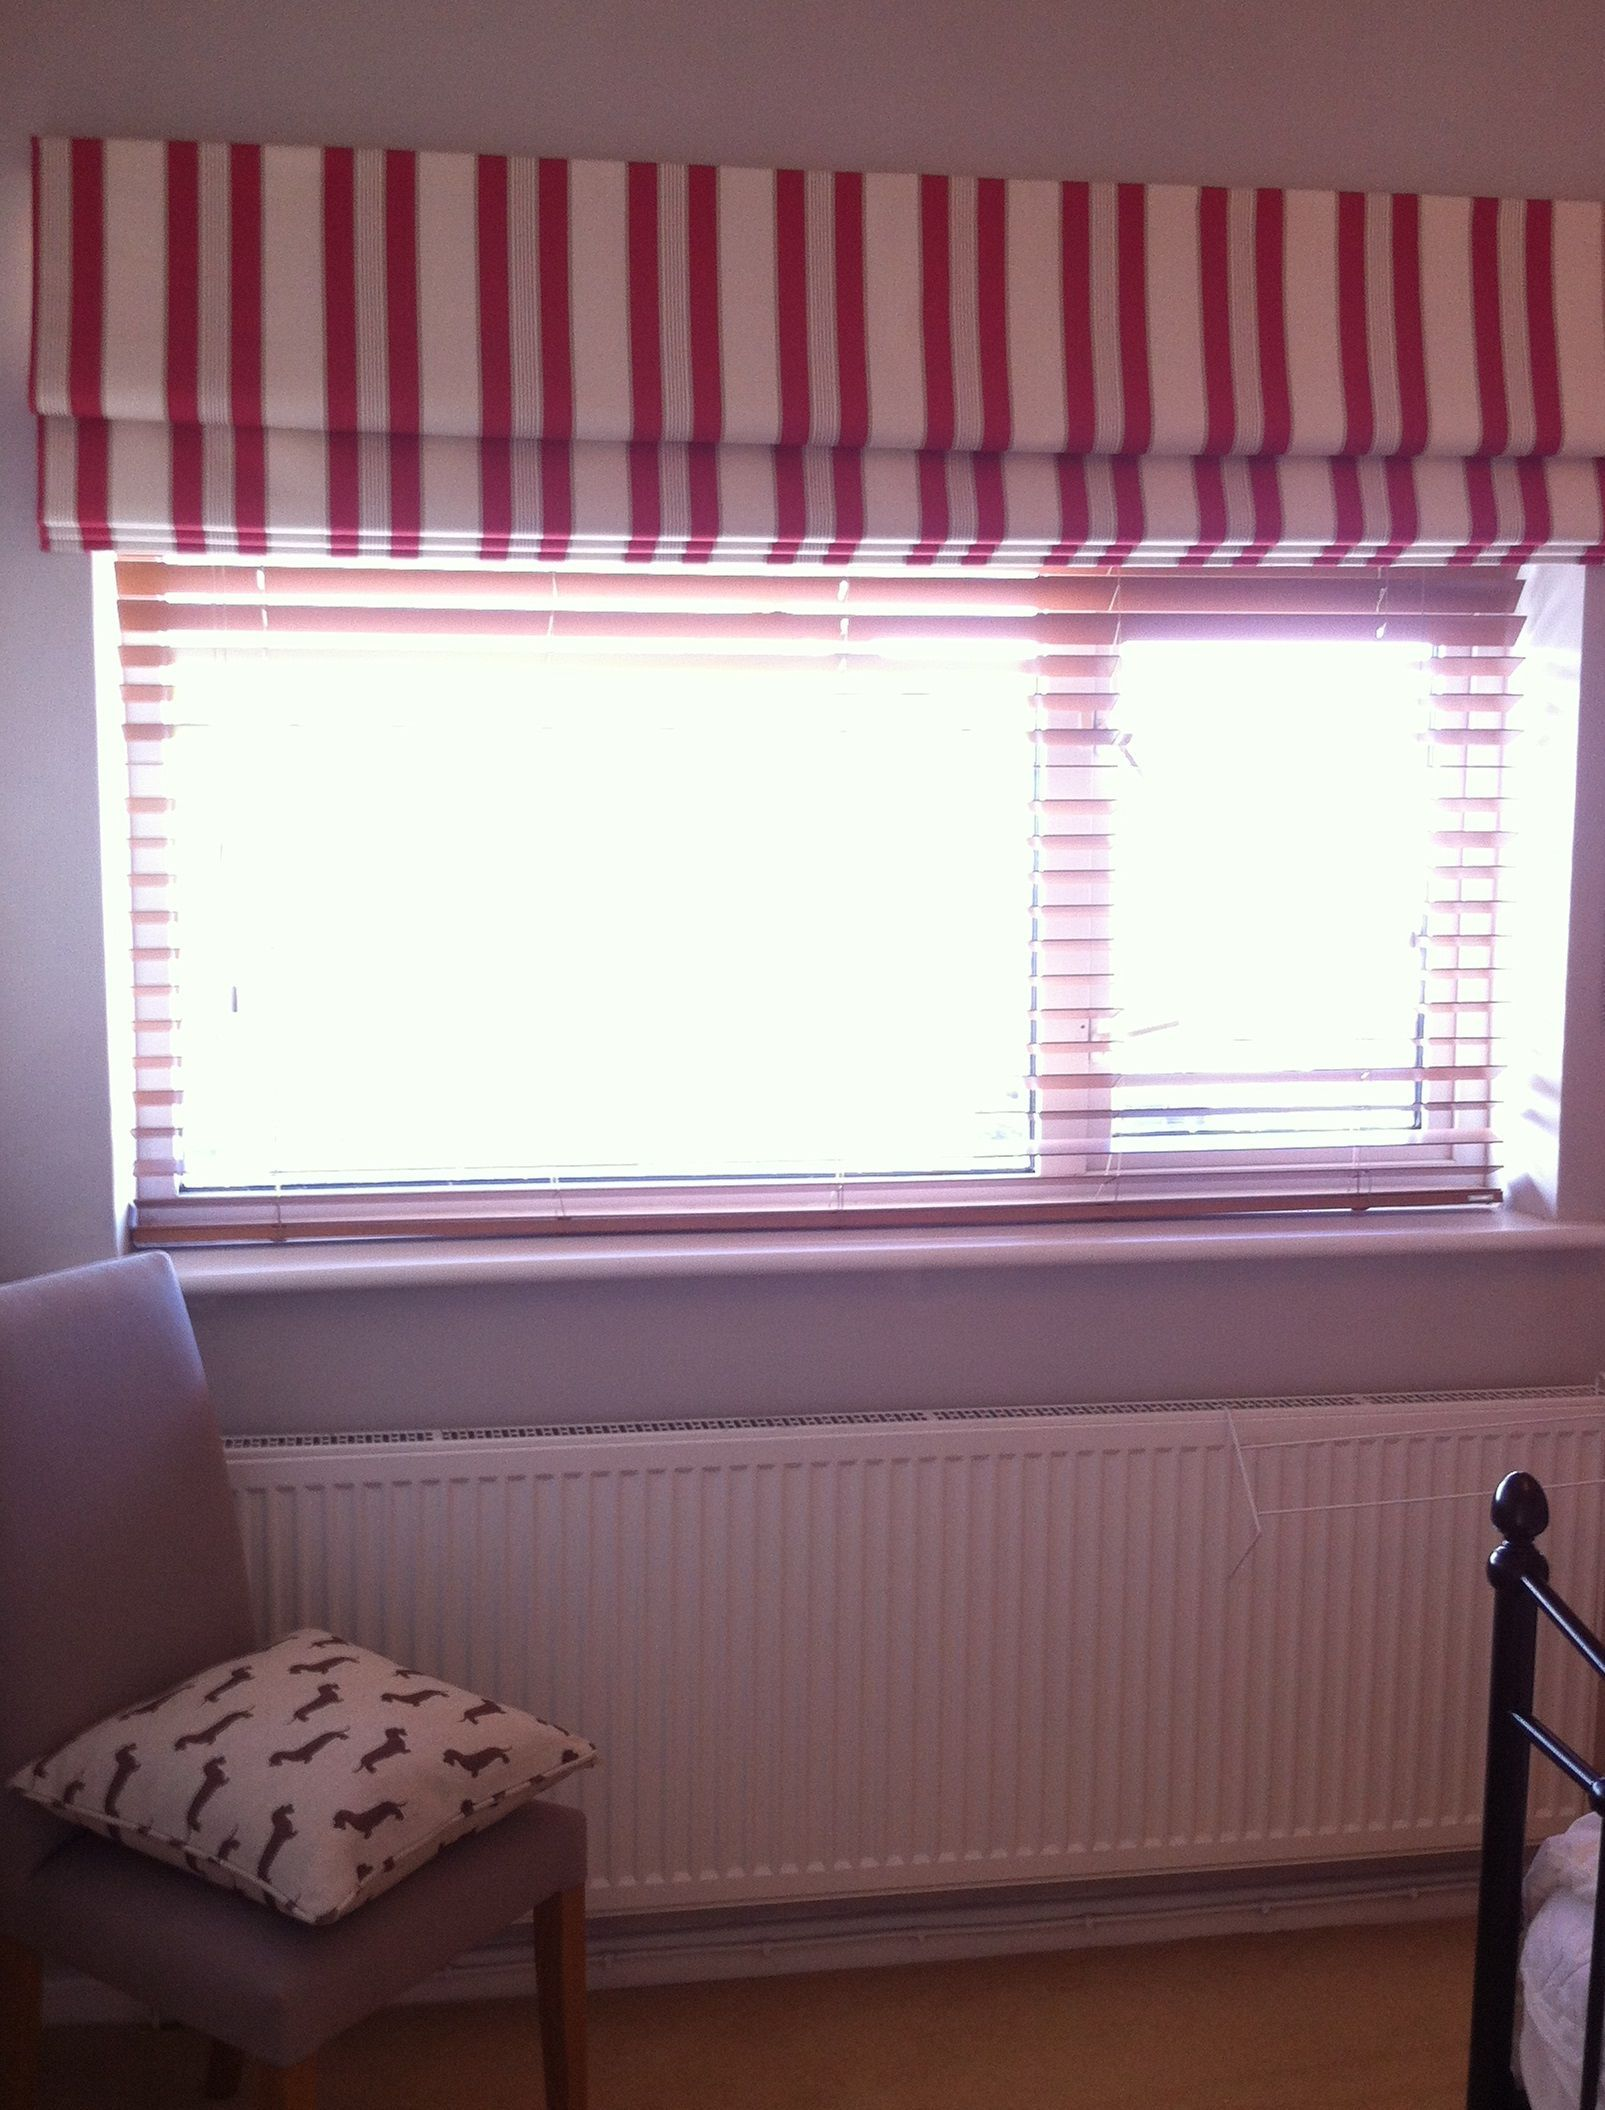 Roman Blind In A Stripe From The Ticking Stripes Collection By Clarke Clarke Home Interior Design Home Decor Home Decorators Collection